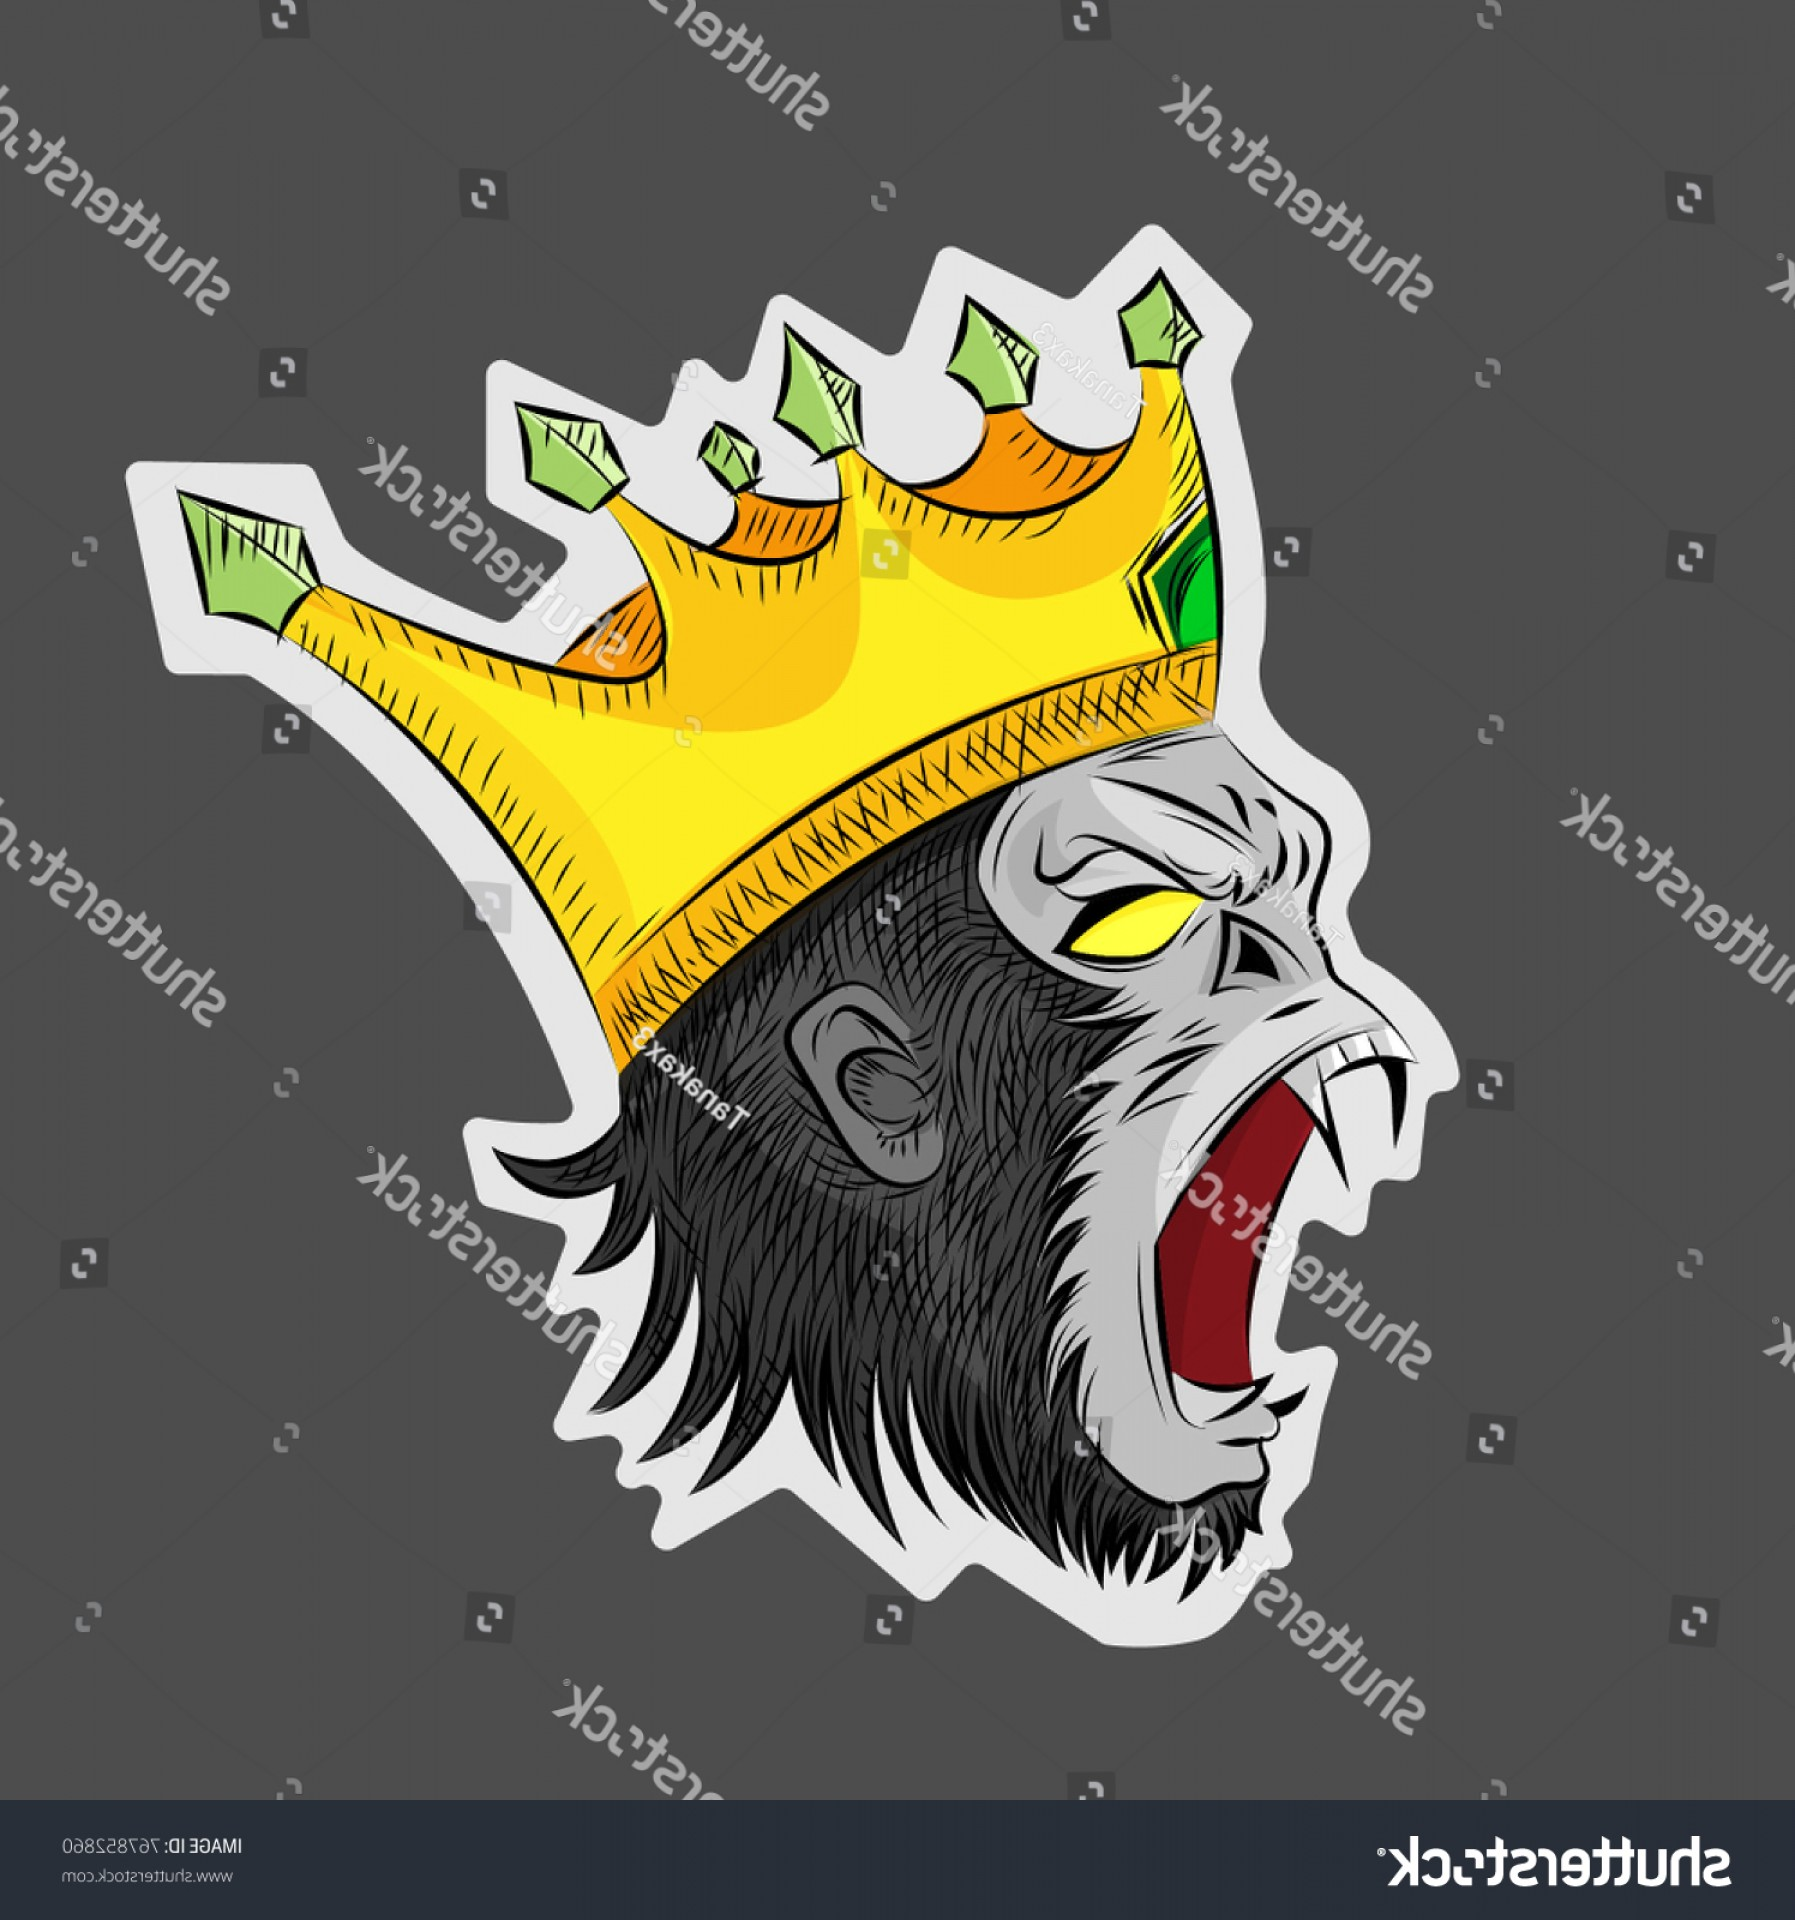 Drawings Of King Kong Vector: Gorilla Angrymonkeysking Kong Wearing Crownvector Illustration